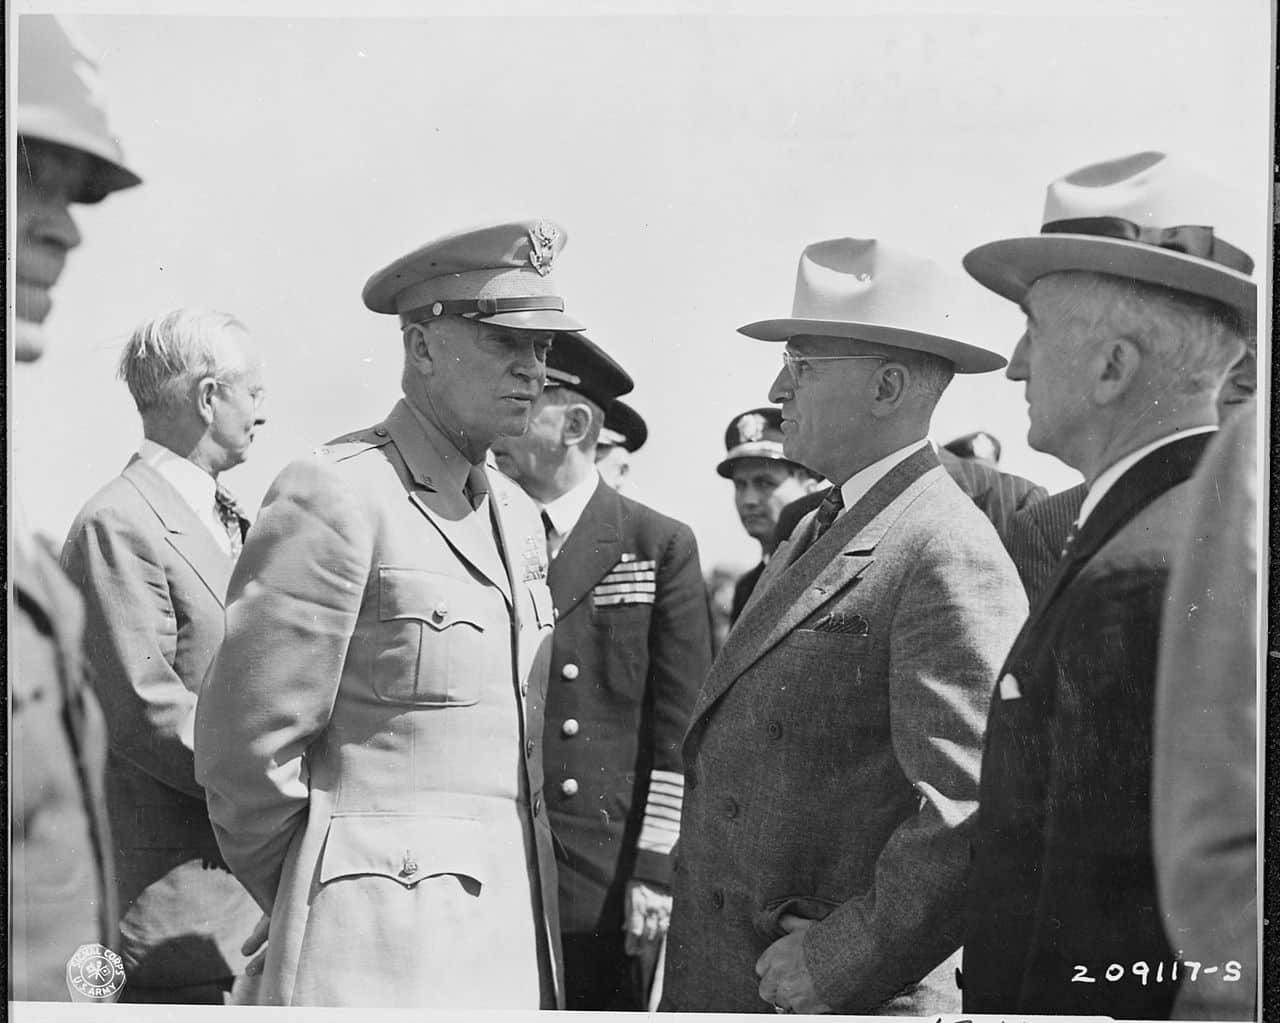 The Potsdam Conference - July 16th 1945 - Eisenhower chats with President Harry S. Truman at an airfield in Brussels, Belgium where the President is waiting to fly to Berlin